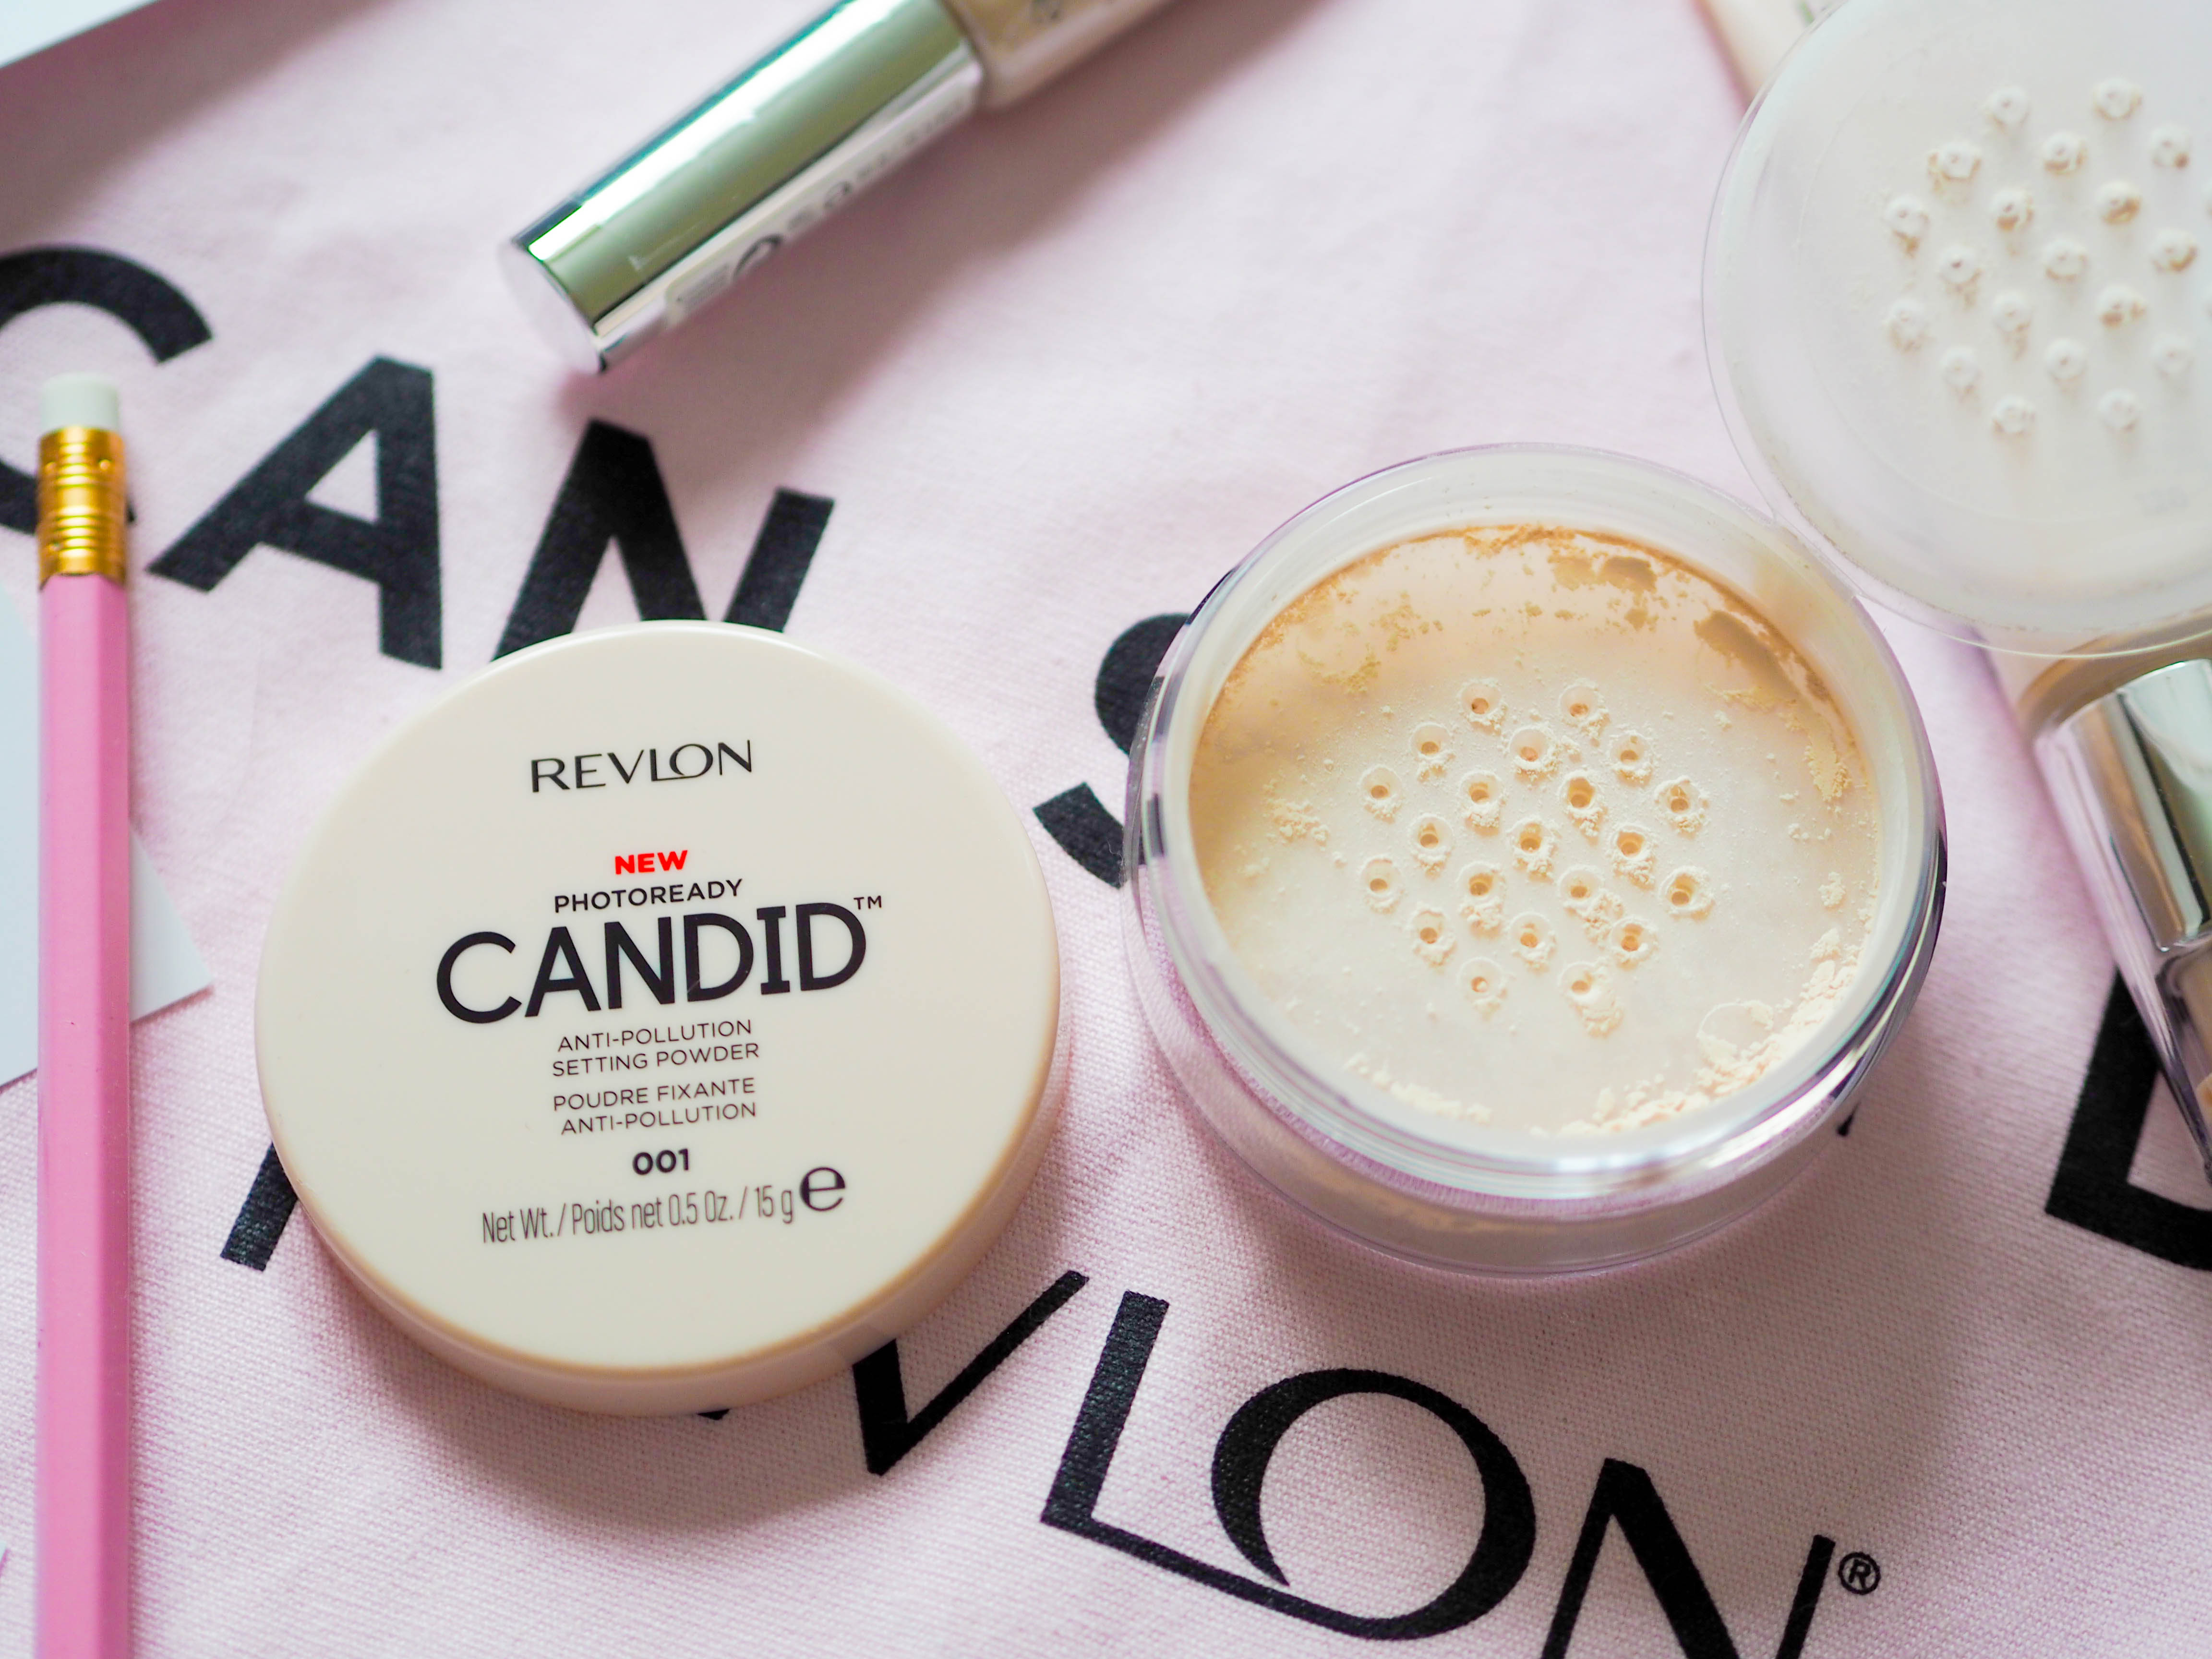 Revlon Photoready Candid Powder